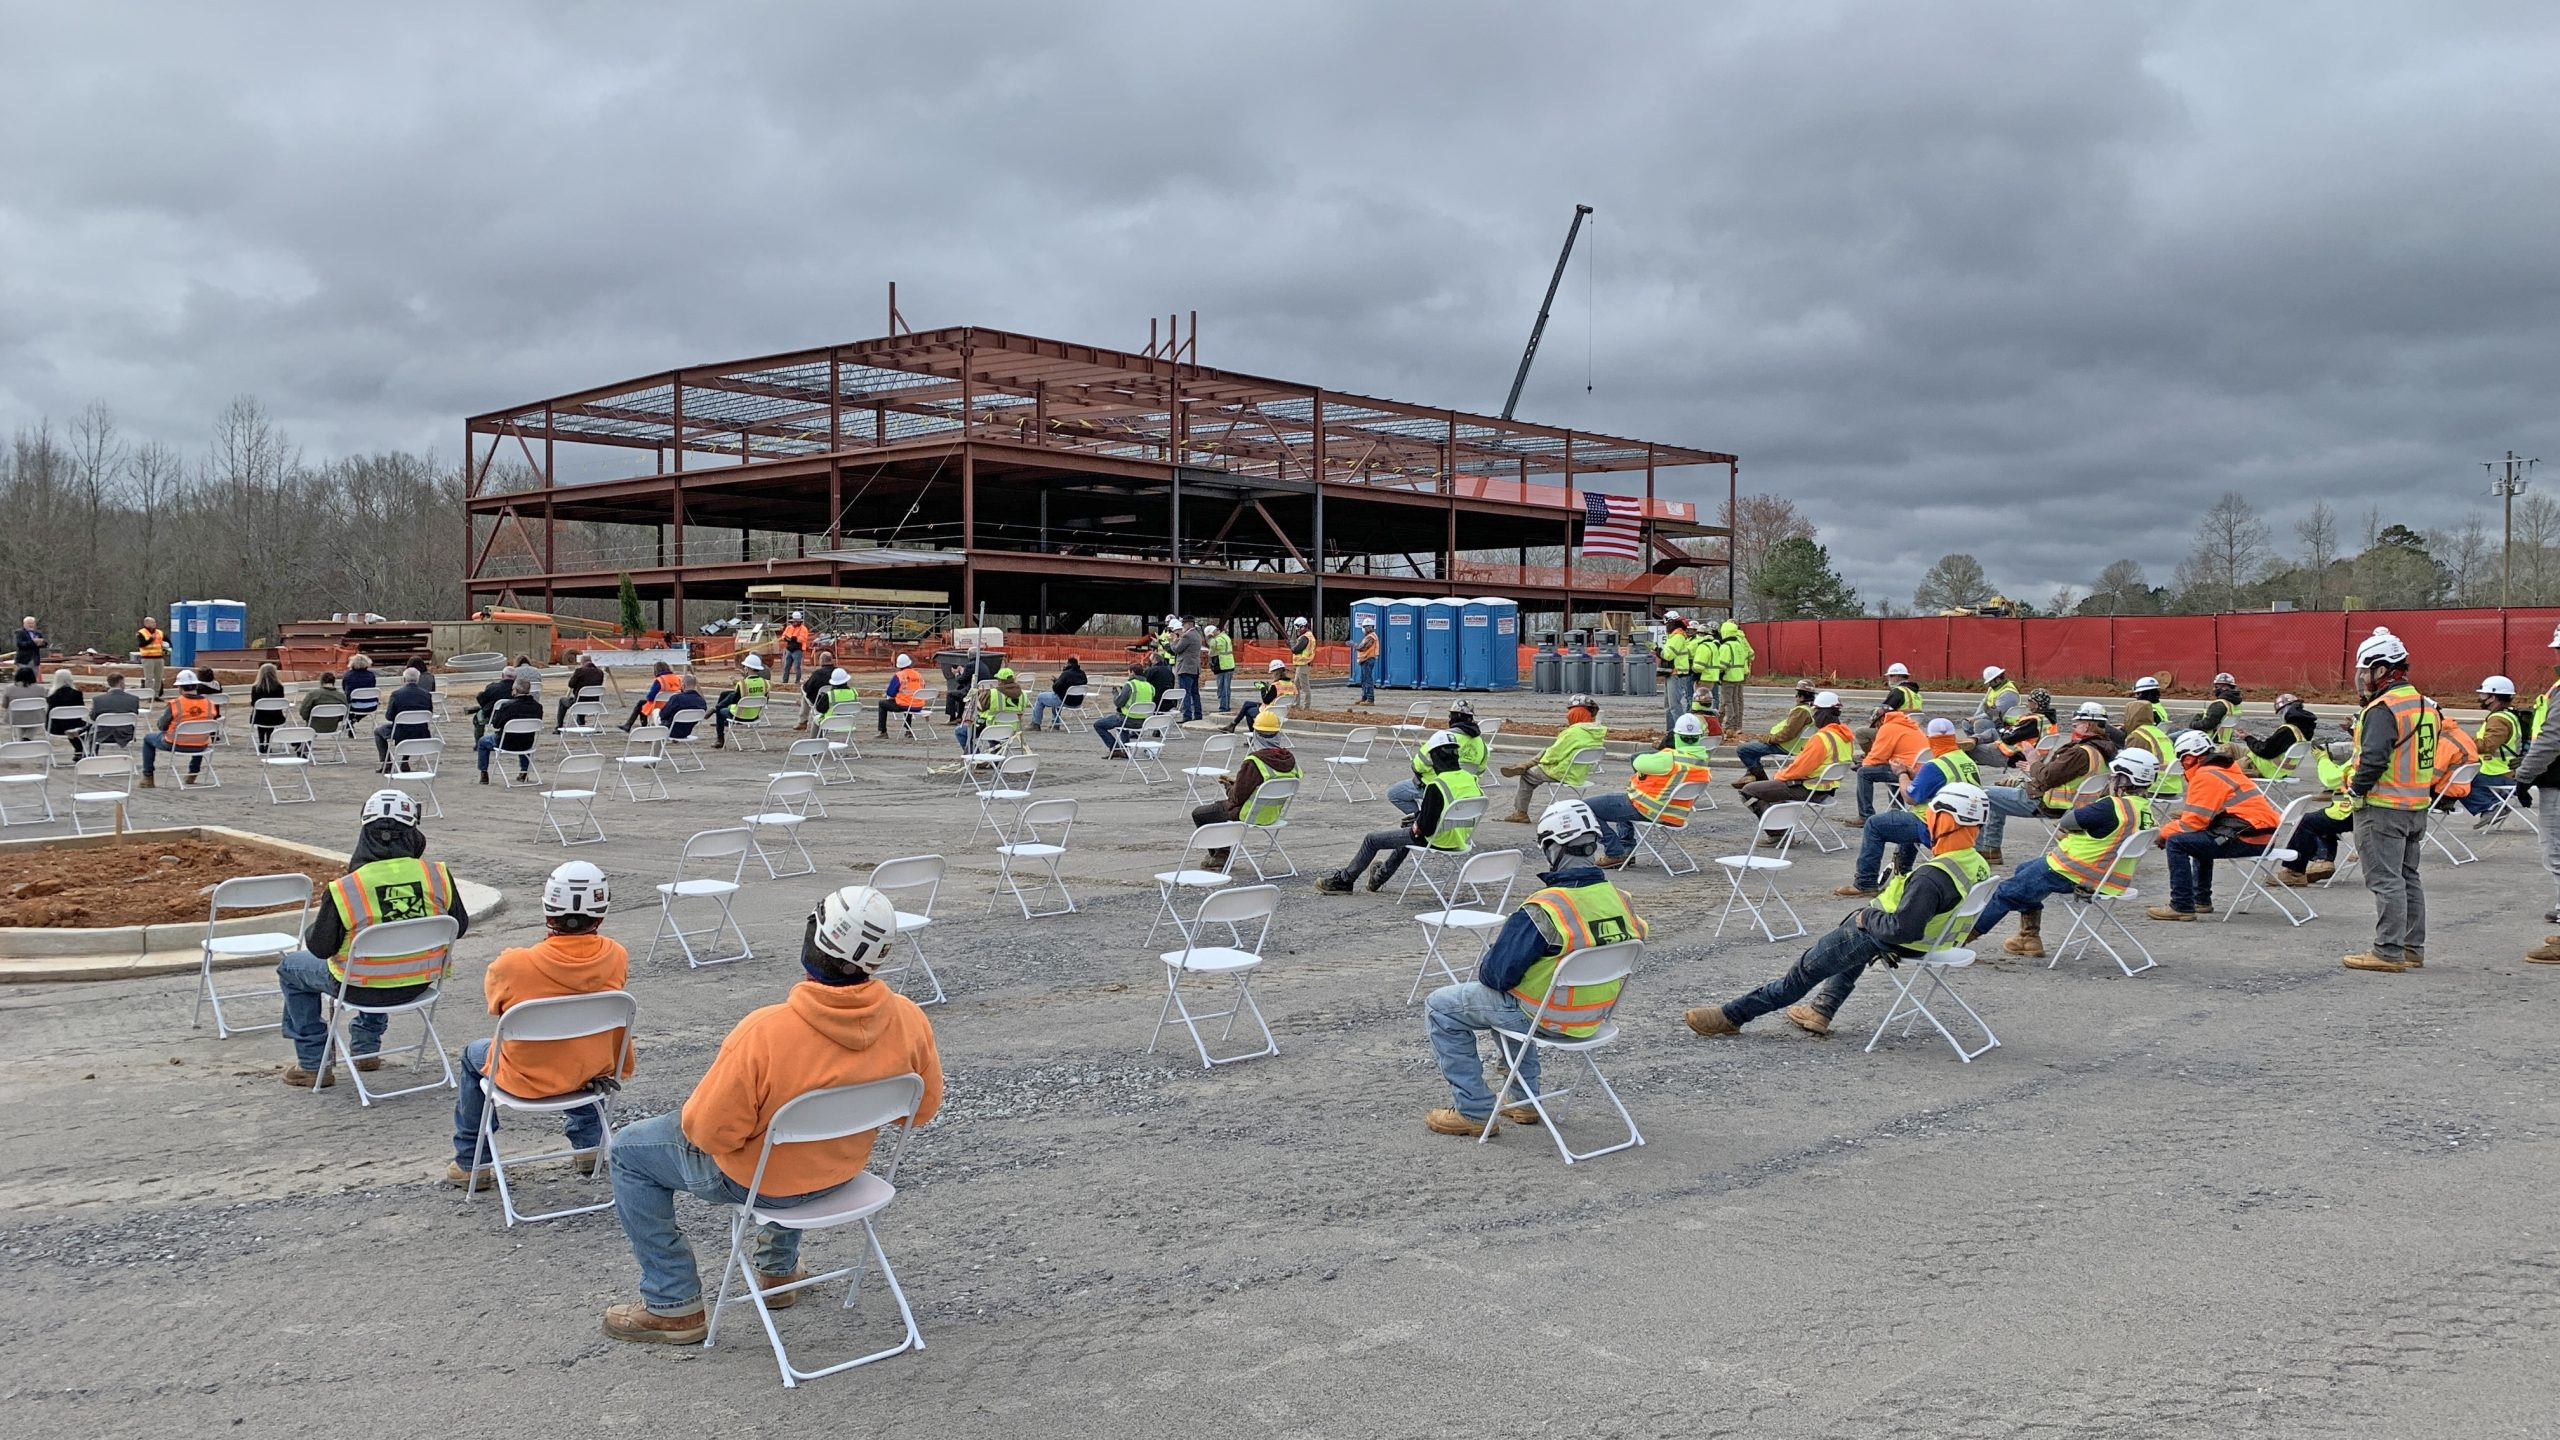 Campus Topping Out Crowd watching construction